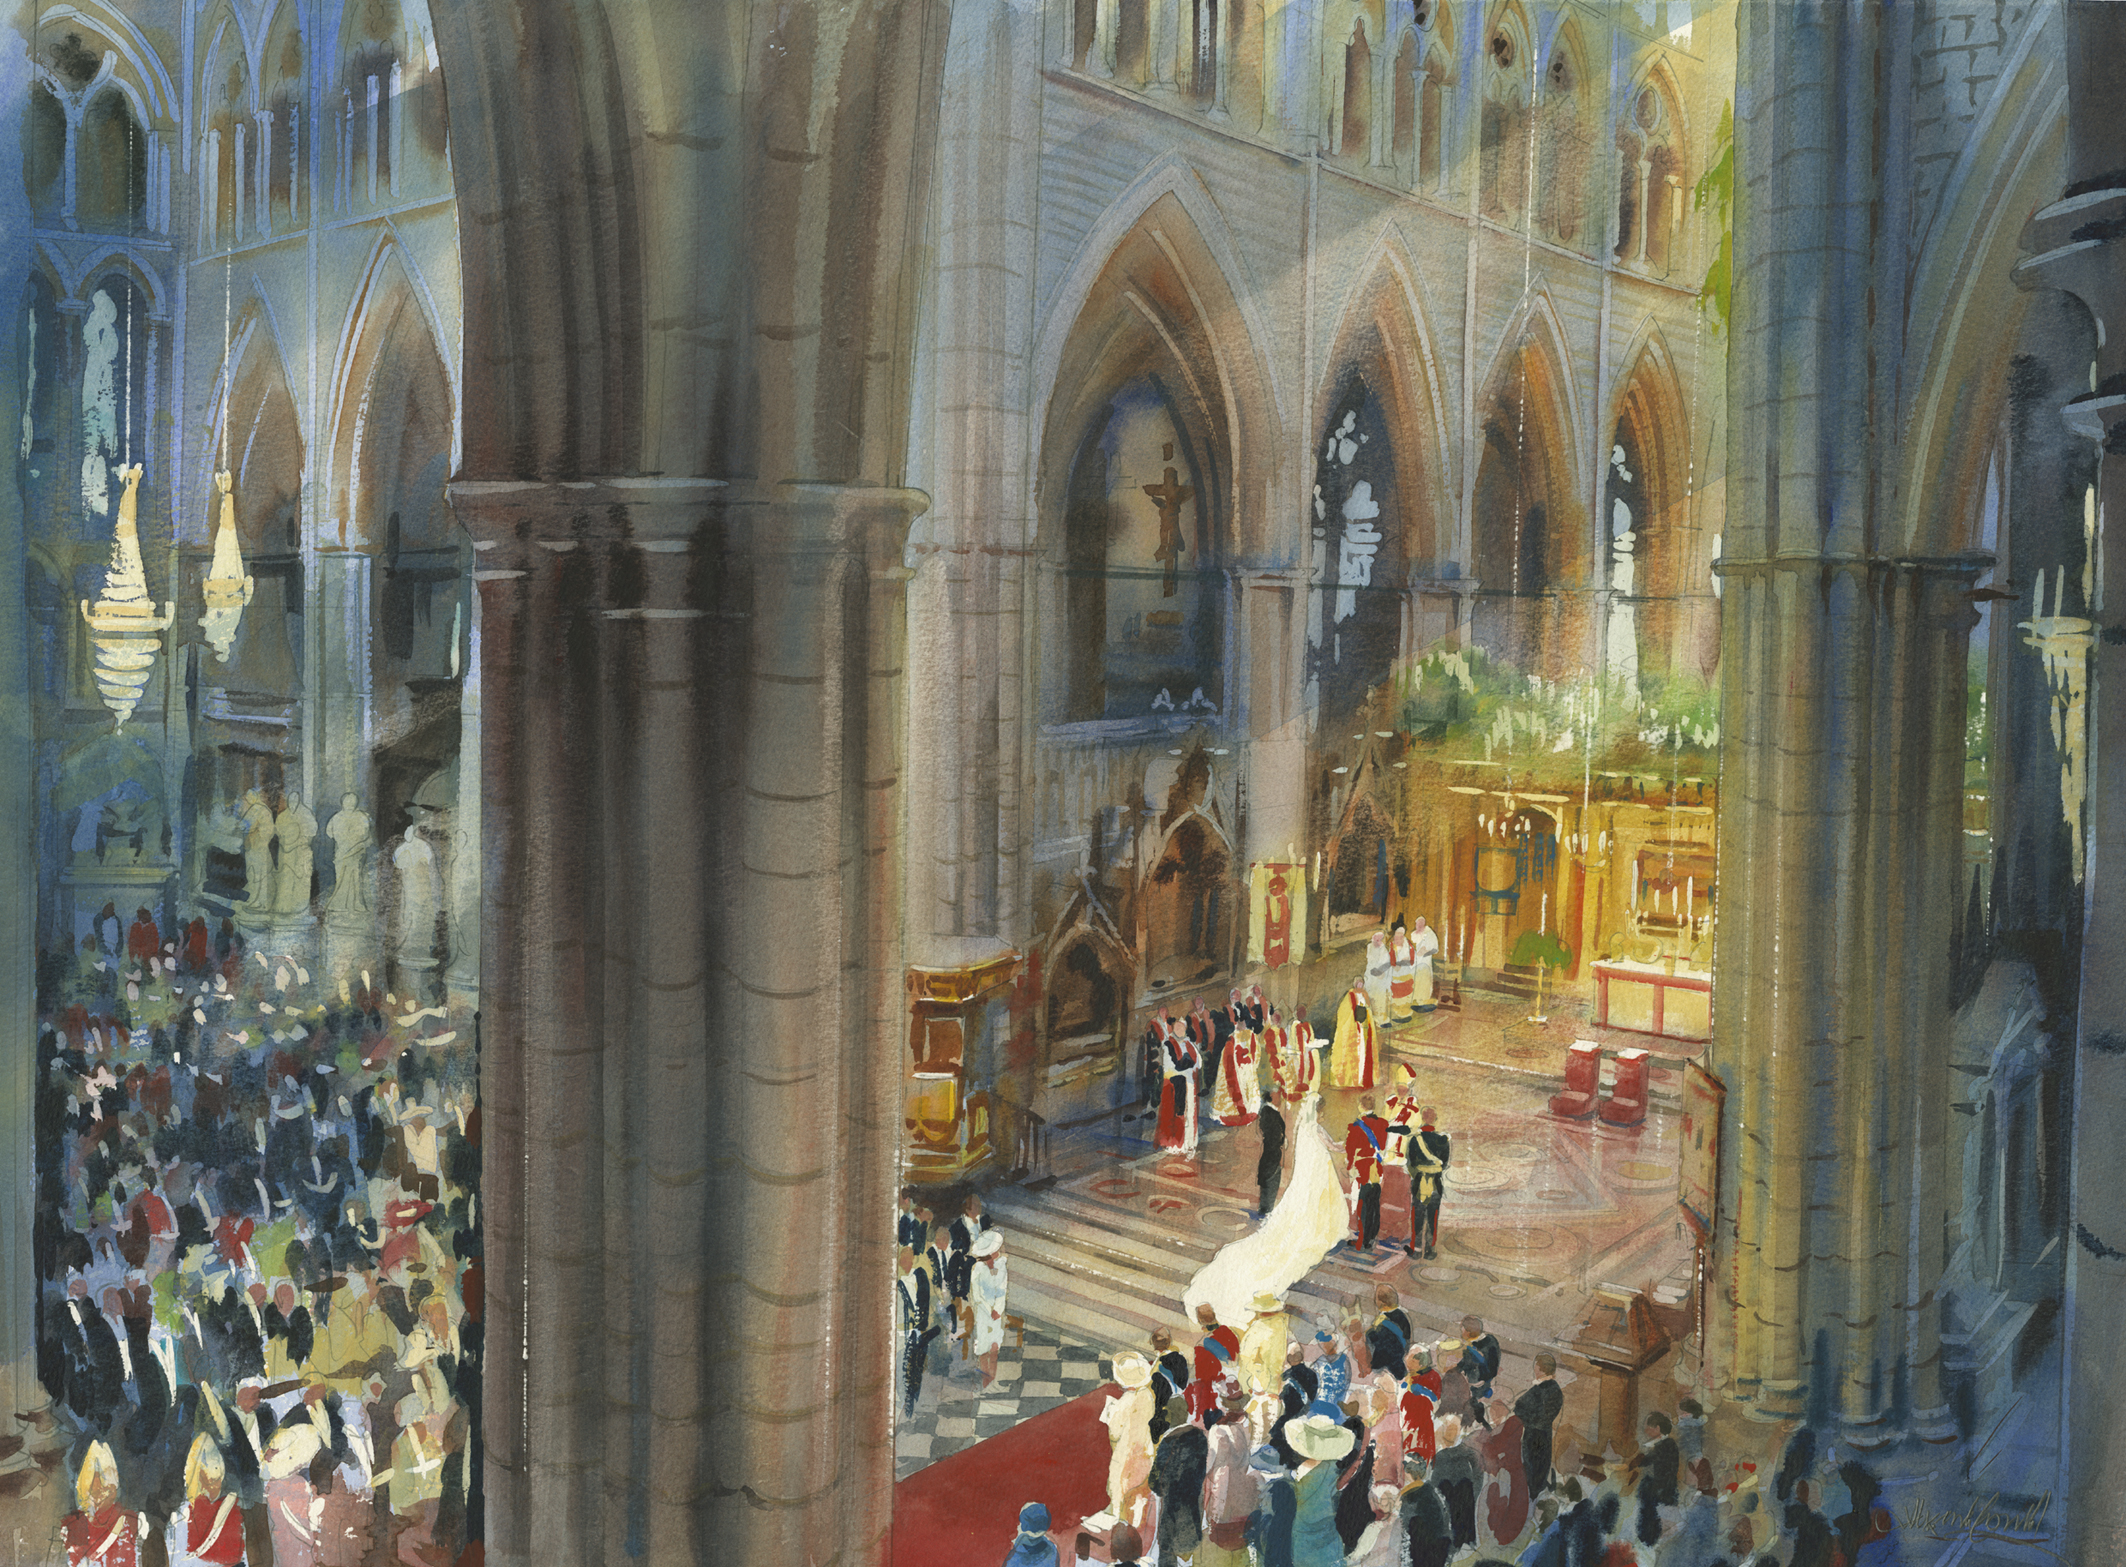 c-13996d-199-westminsterabbey-theweddingofhrhprincewilliamandmisscatherinemiddleton-2011-watercoloronpaper-22x30in-westmiinsiterabbeycollection-maquette